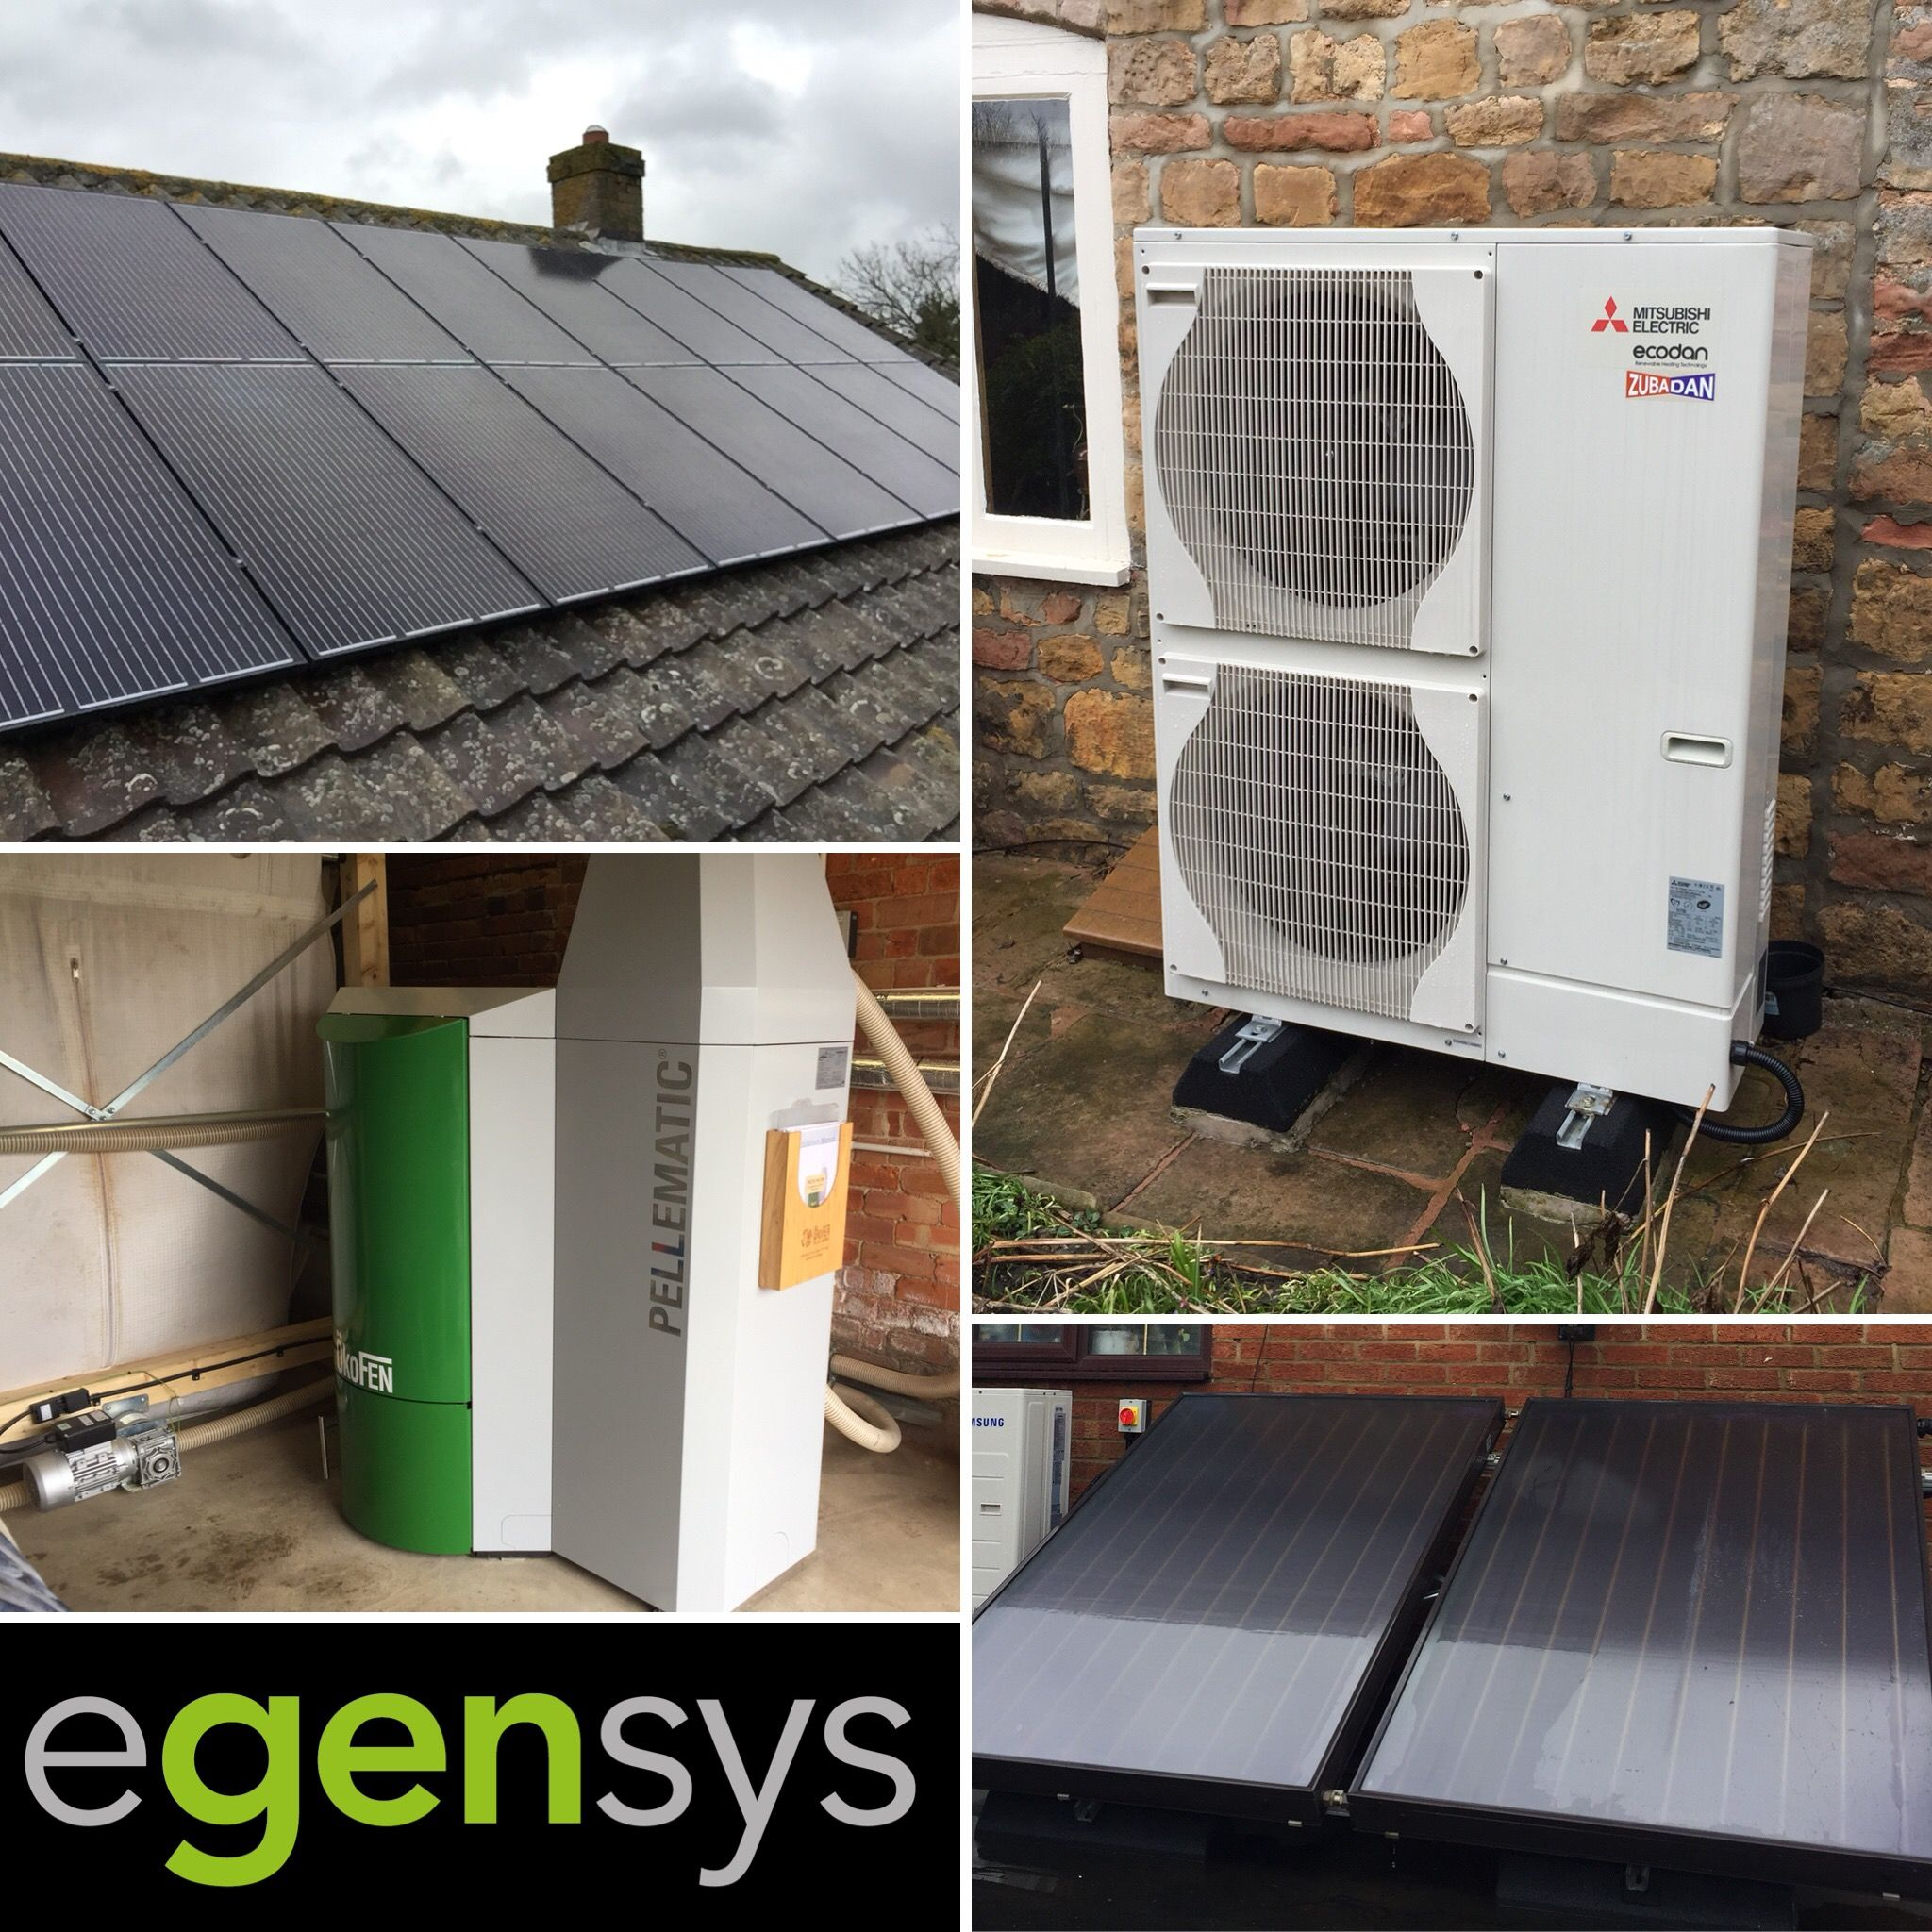 Egensys can offer a complete renewables package including